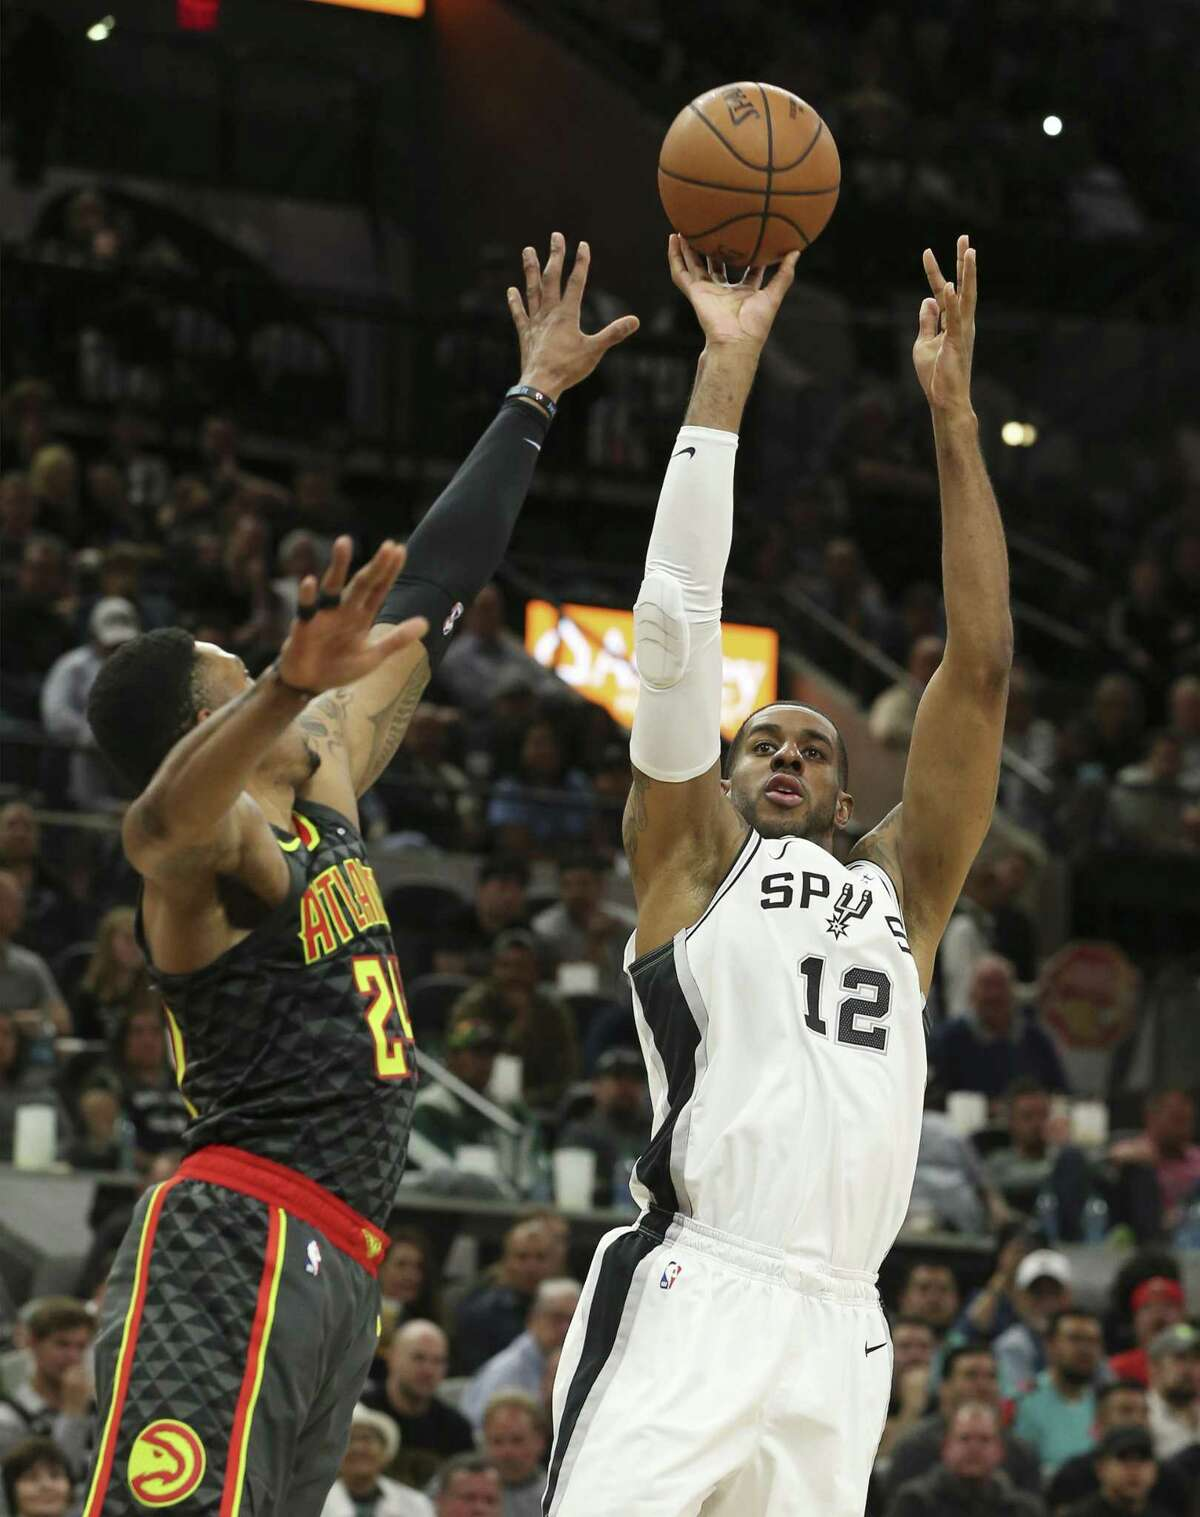 Spurs' LaMarcus Aldridge (12) fades back for a jumper against Atlanta Hawks' Kent Bazemore (24) during their game at the AT&T Center on Tuesday, Apr. 2, 2019. (Kin Man Hui/San Antonio Express-News)